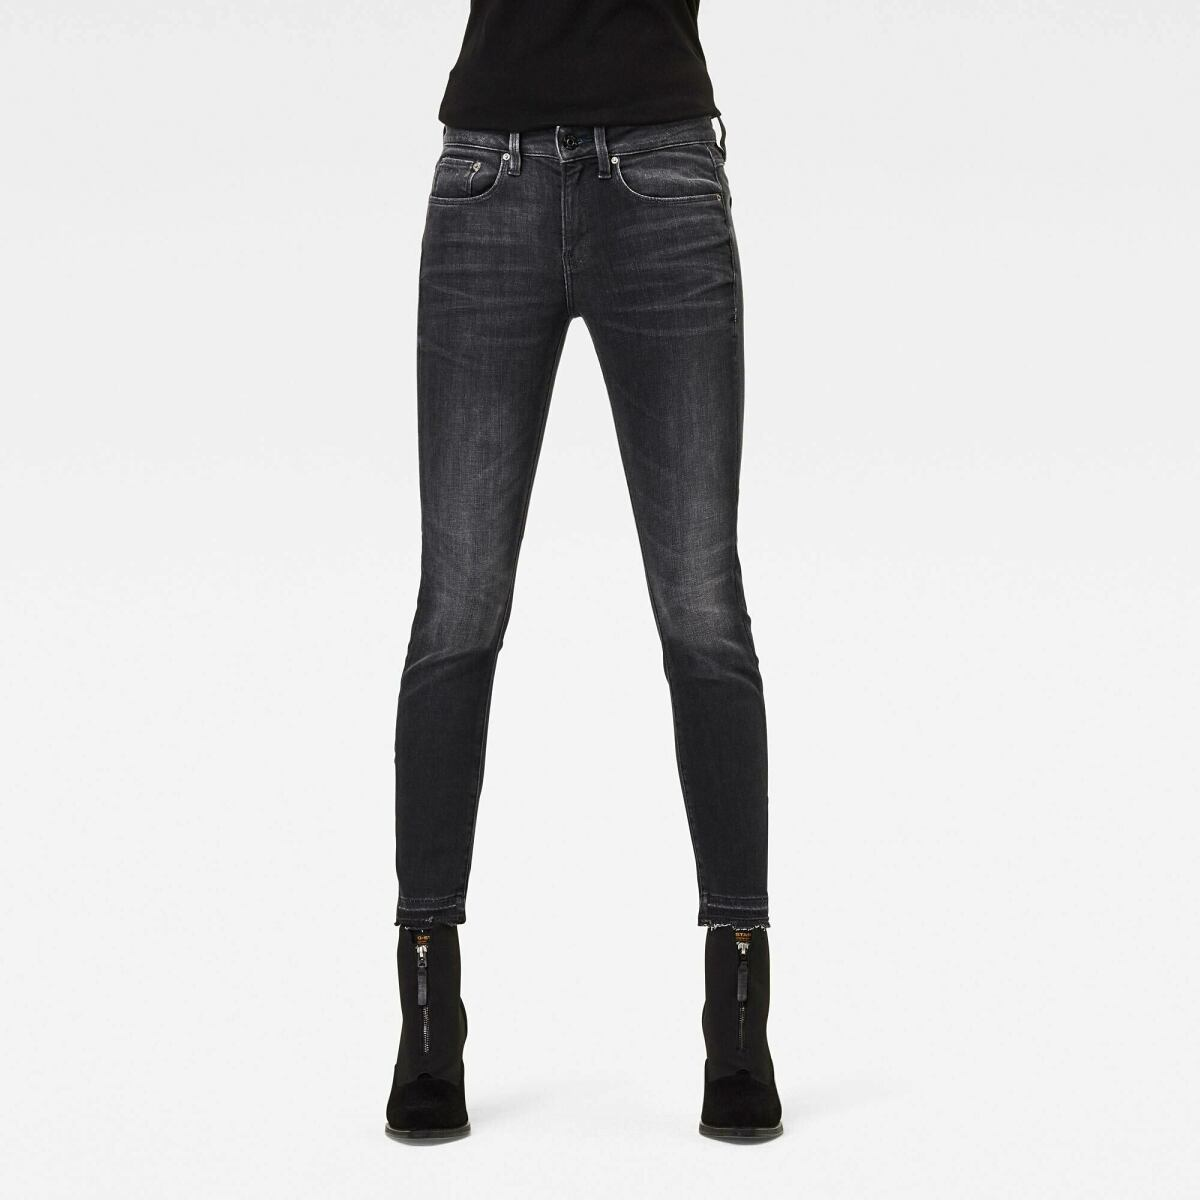 Black Woman Jeans 3301 Mid Skinny Ripped Edge Ankle Jeans G-Star WOMEN